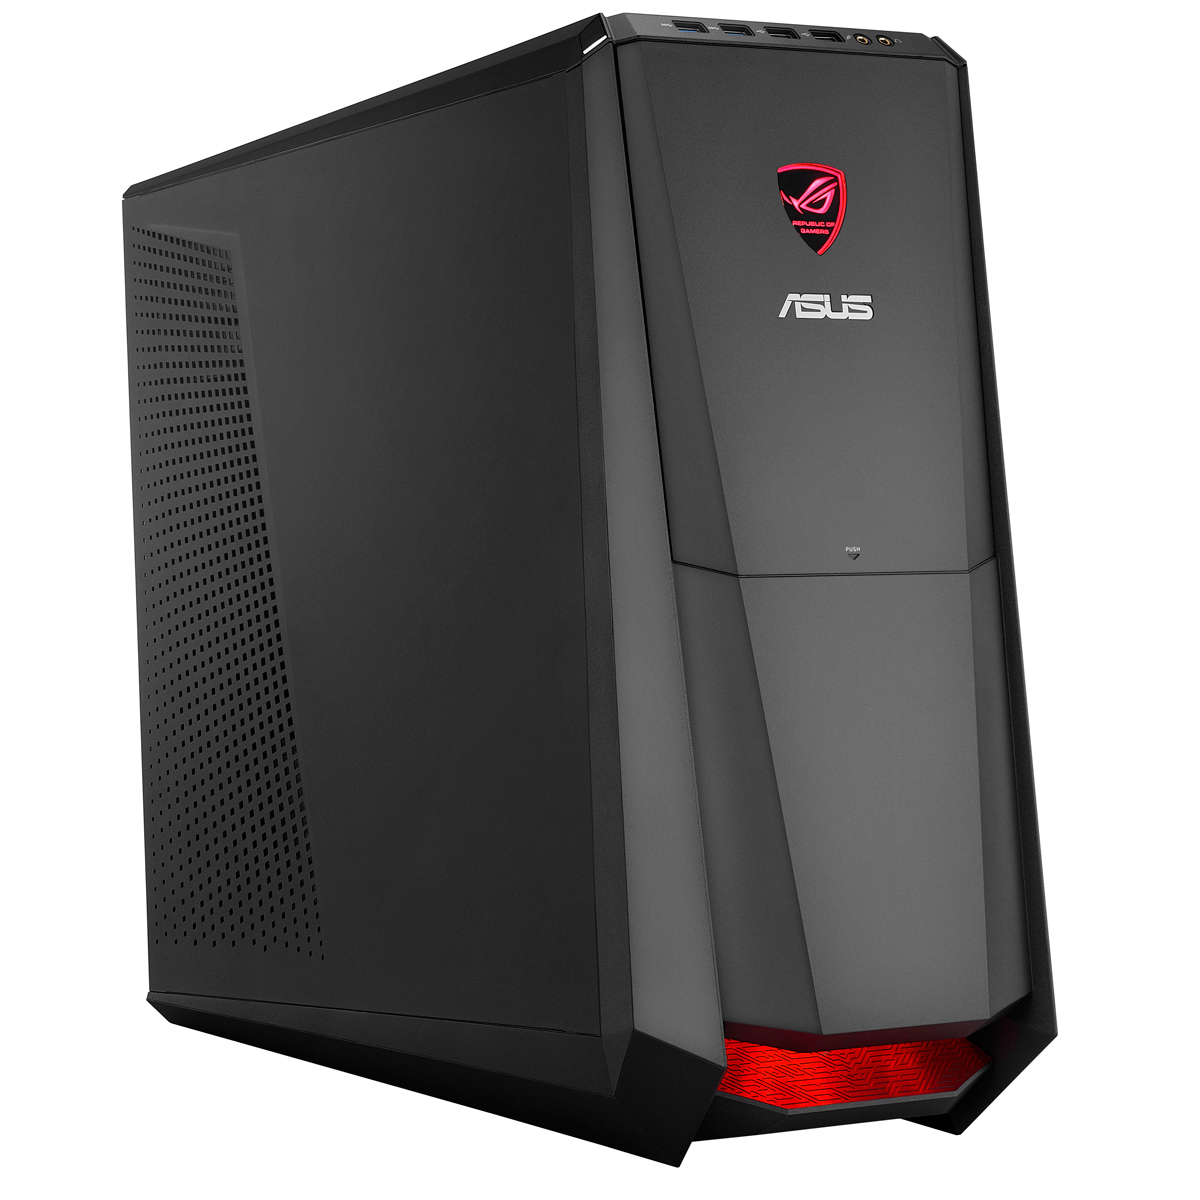 asus rog tytan cg8480 fr017s cg8480 fr017s achat vente pc de bureau sur. Black Bedroom Furniture Sets. Home Design Ideas